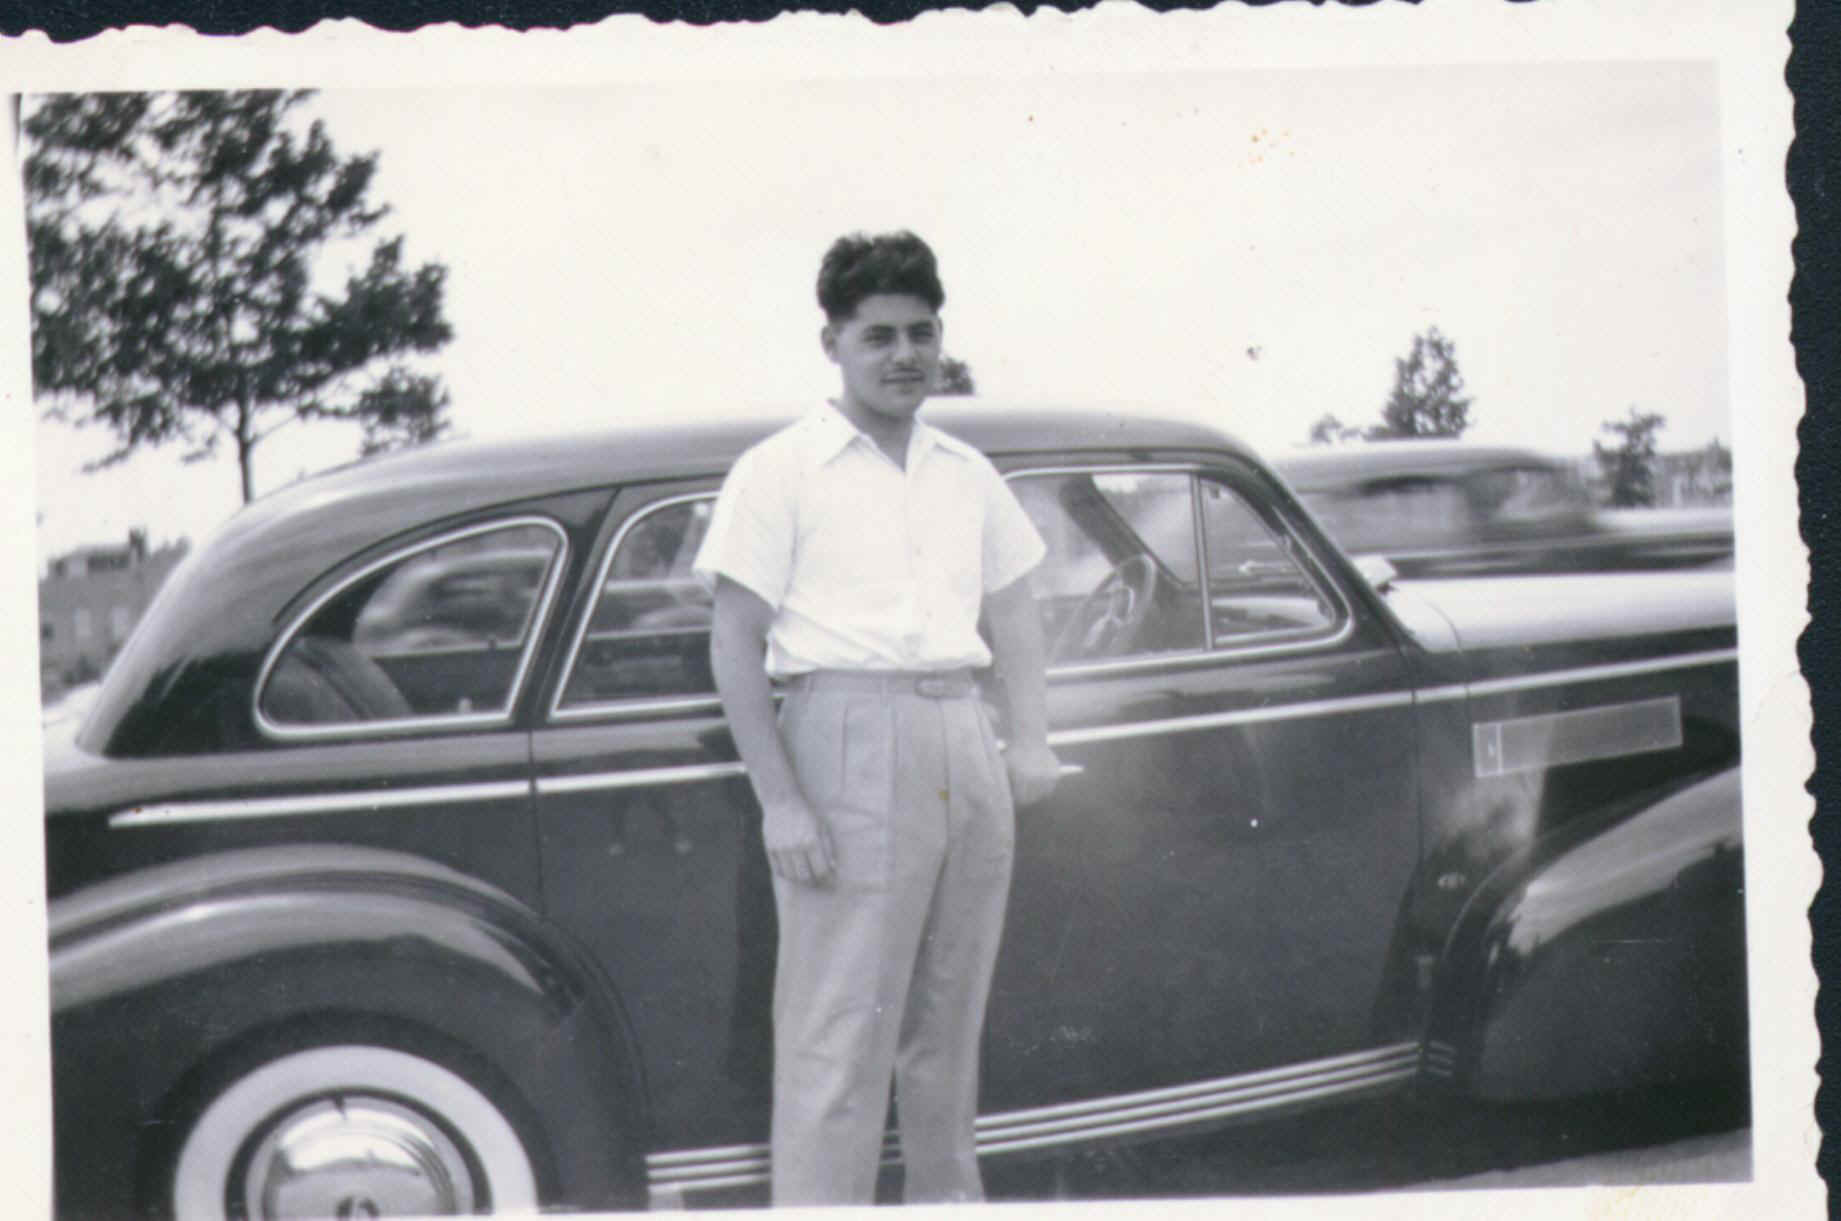 This Is Abe is the 1940's . Sweet Car Grandpa. Those are some fat whitewalls